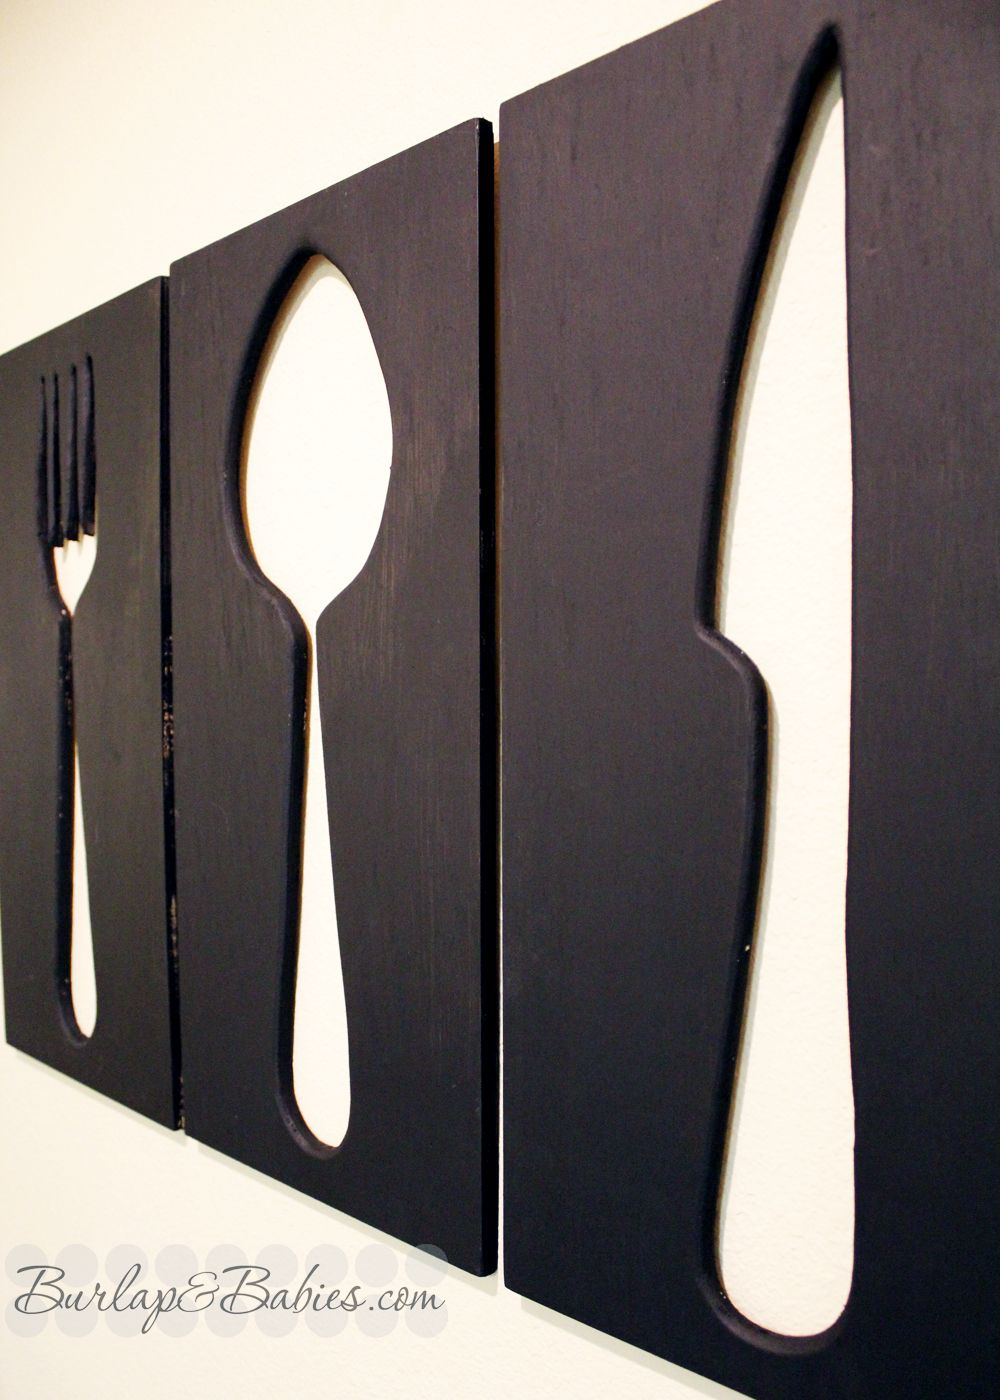 Create Your Own Giant Utensil Wall Art Full Tutorial Included